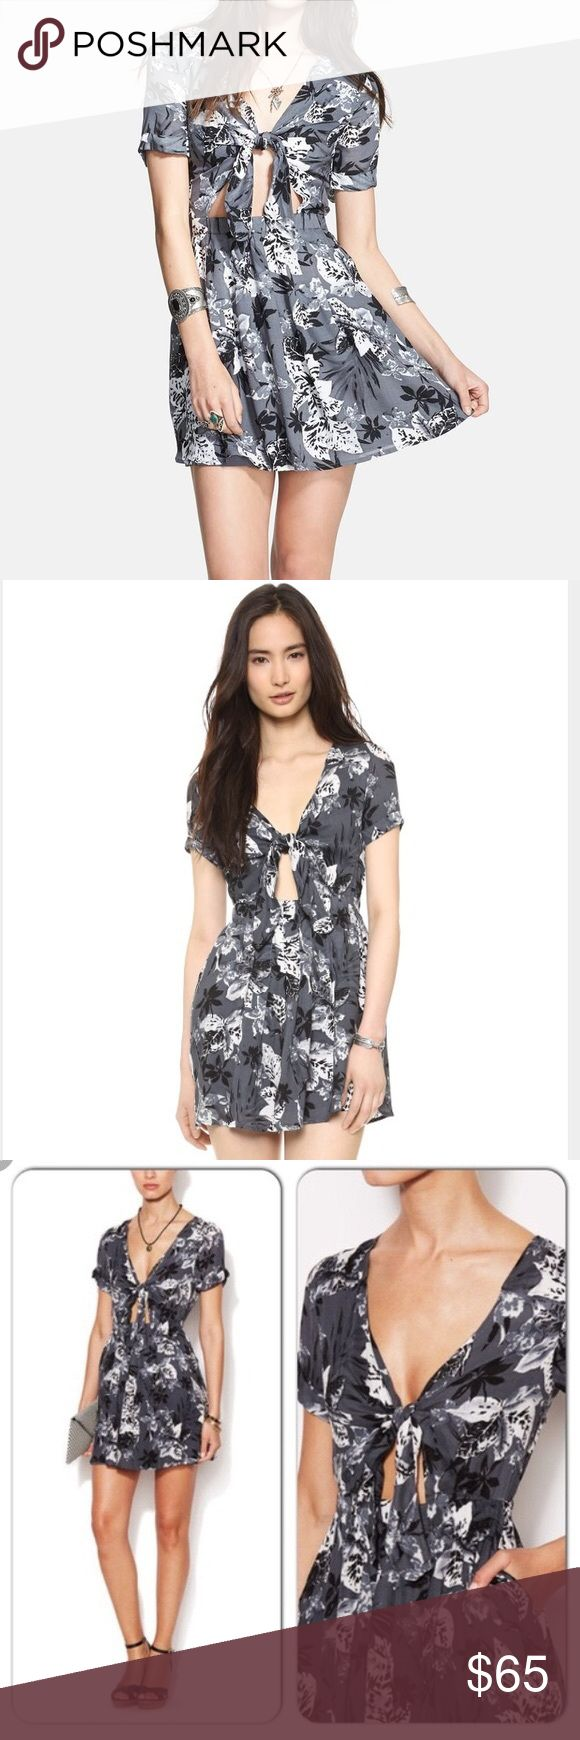 Free people floral front tie dress Cute free people floral mini dress. In perfect condition. Message me for any questions or more information. I'm accepting offers on this item Free People Dresses Mini